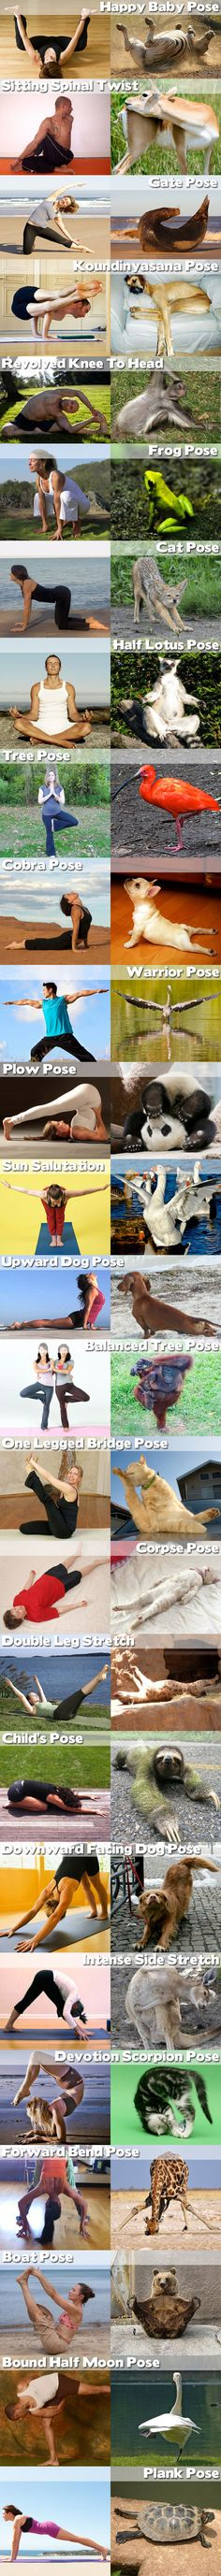 Funny Animal Yoga – 28 Pics